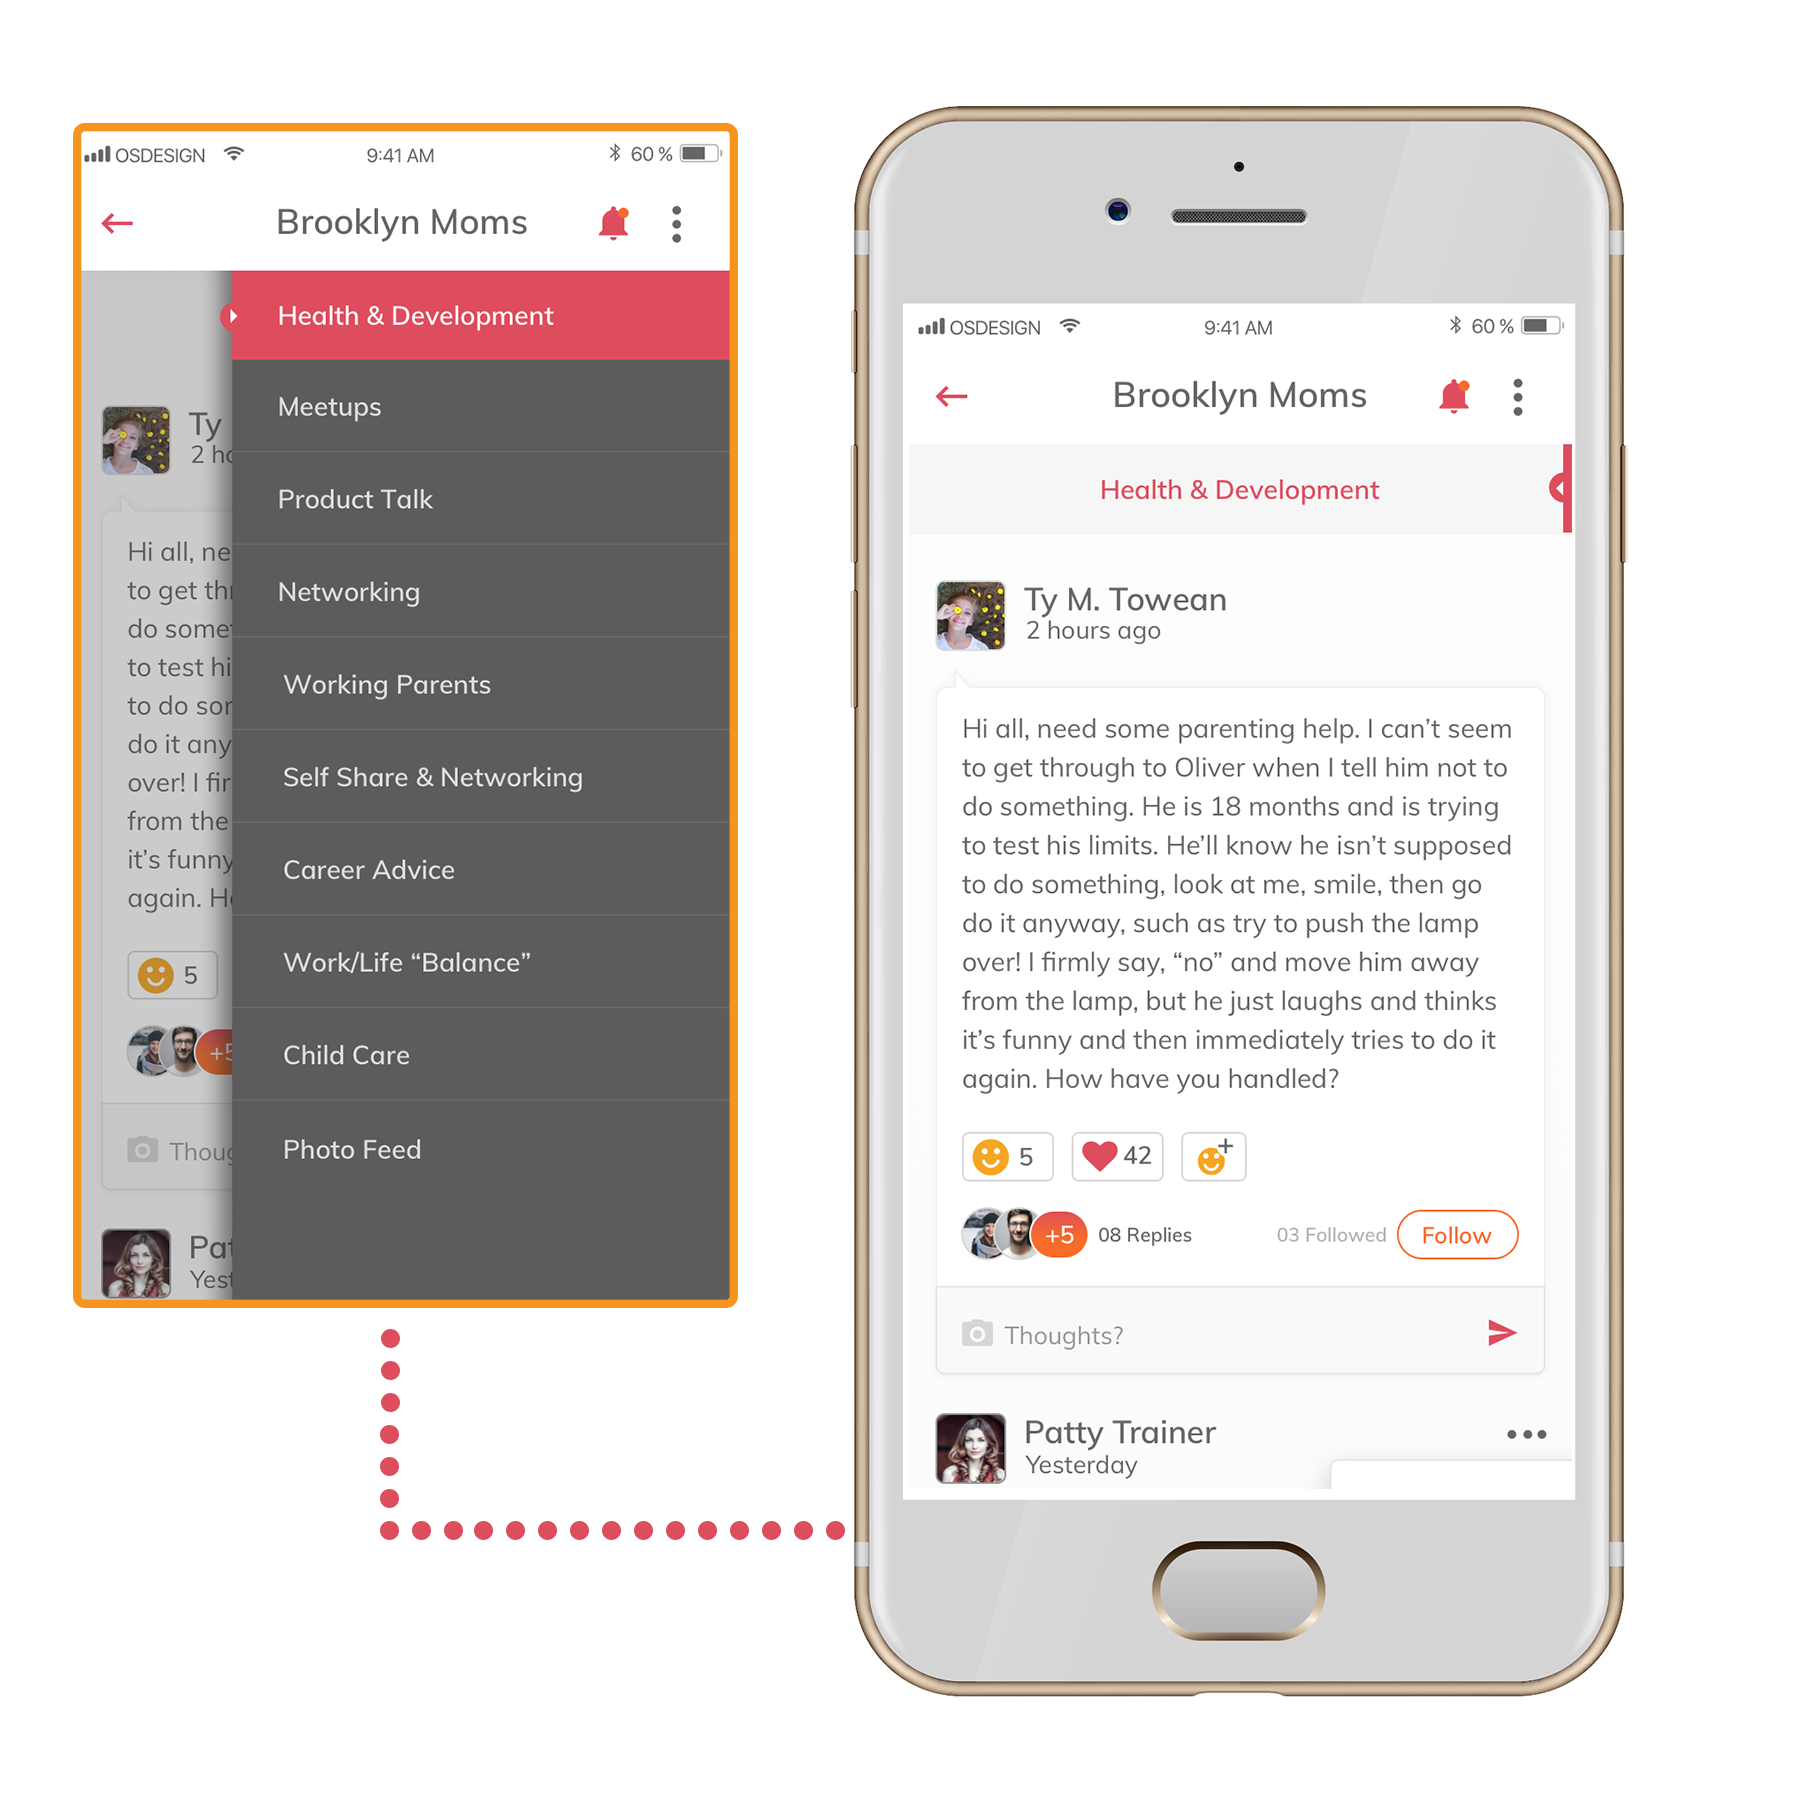 Screenshots of the topics and conversations view of the ellie app.